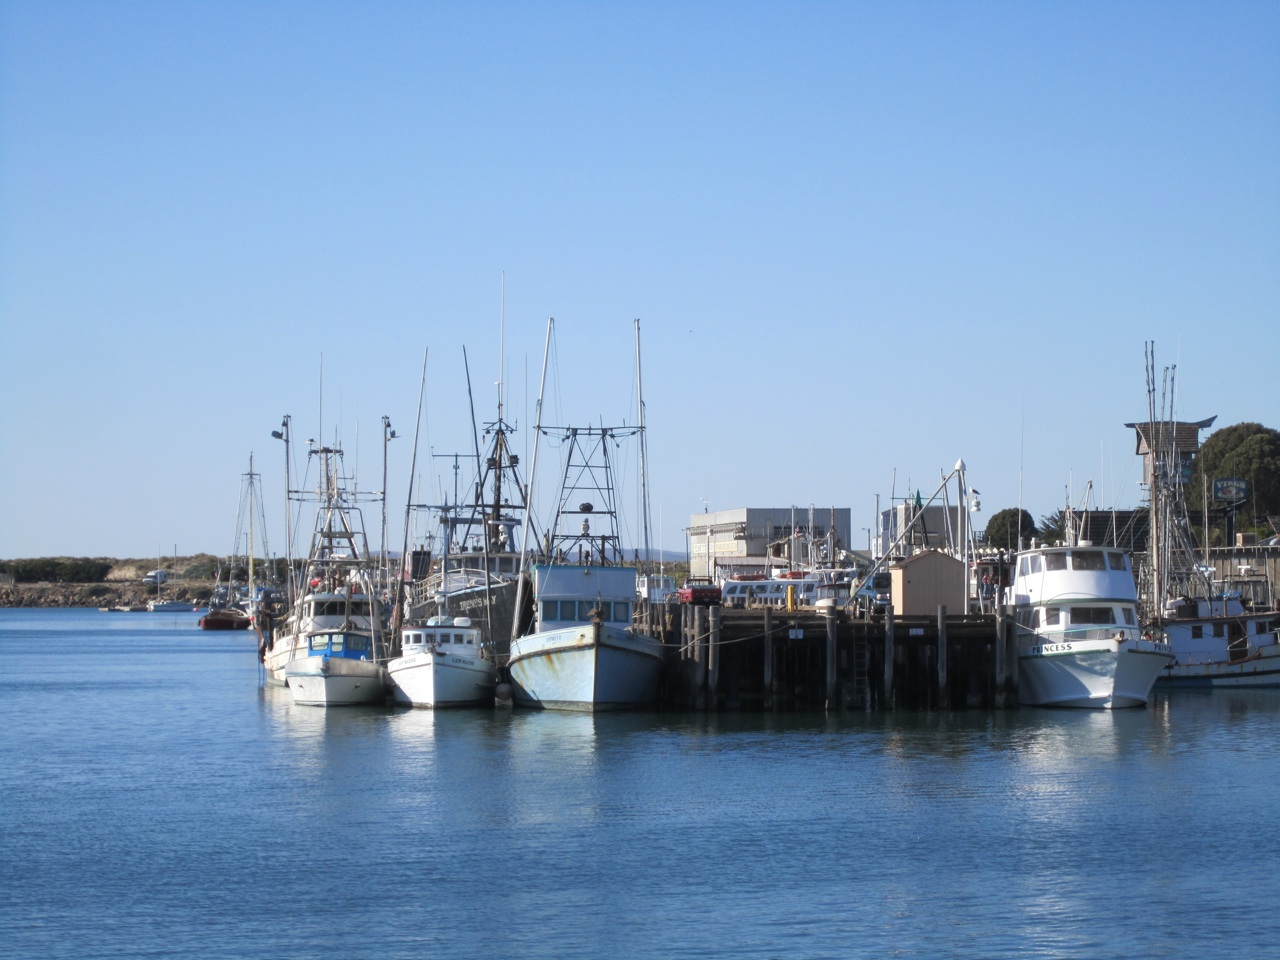 Some Of The Fishing Boats At Morro Bay